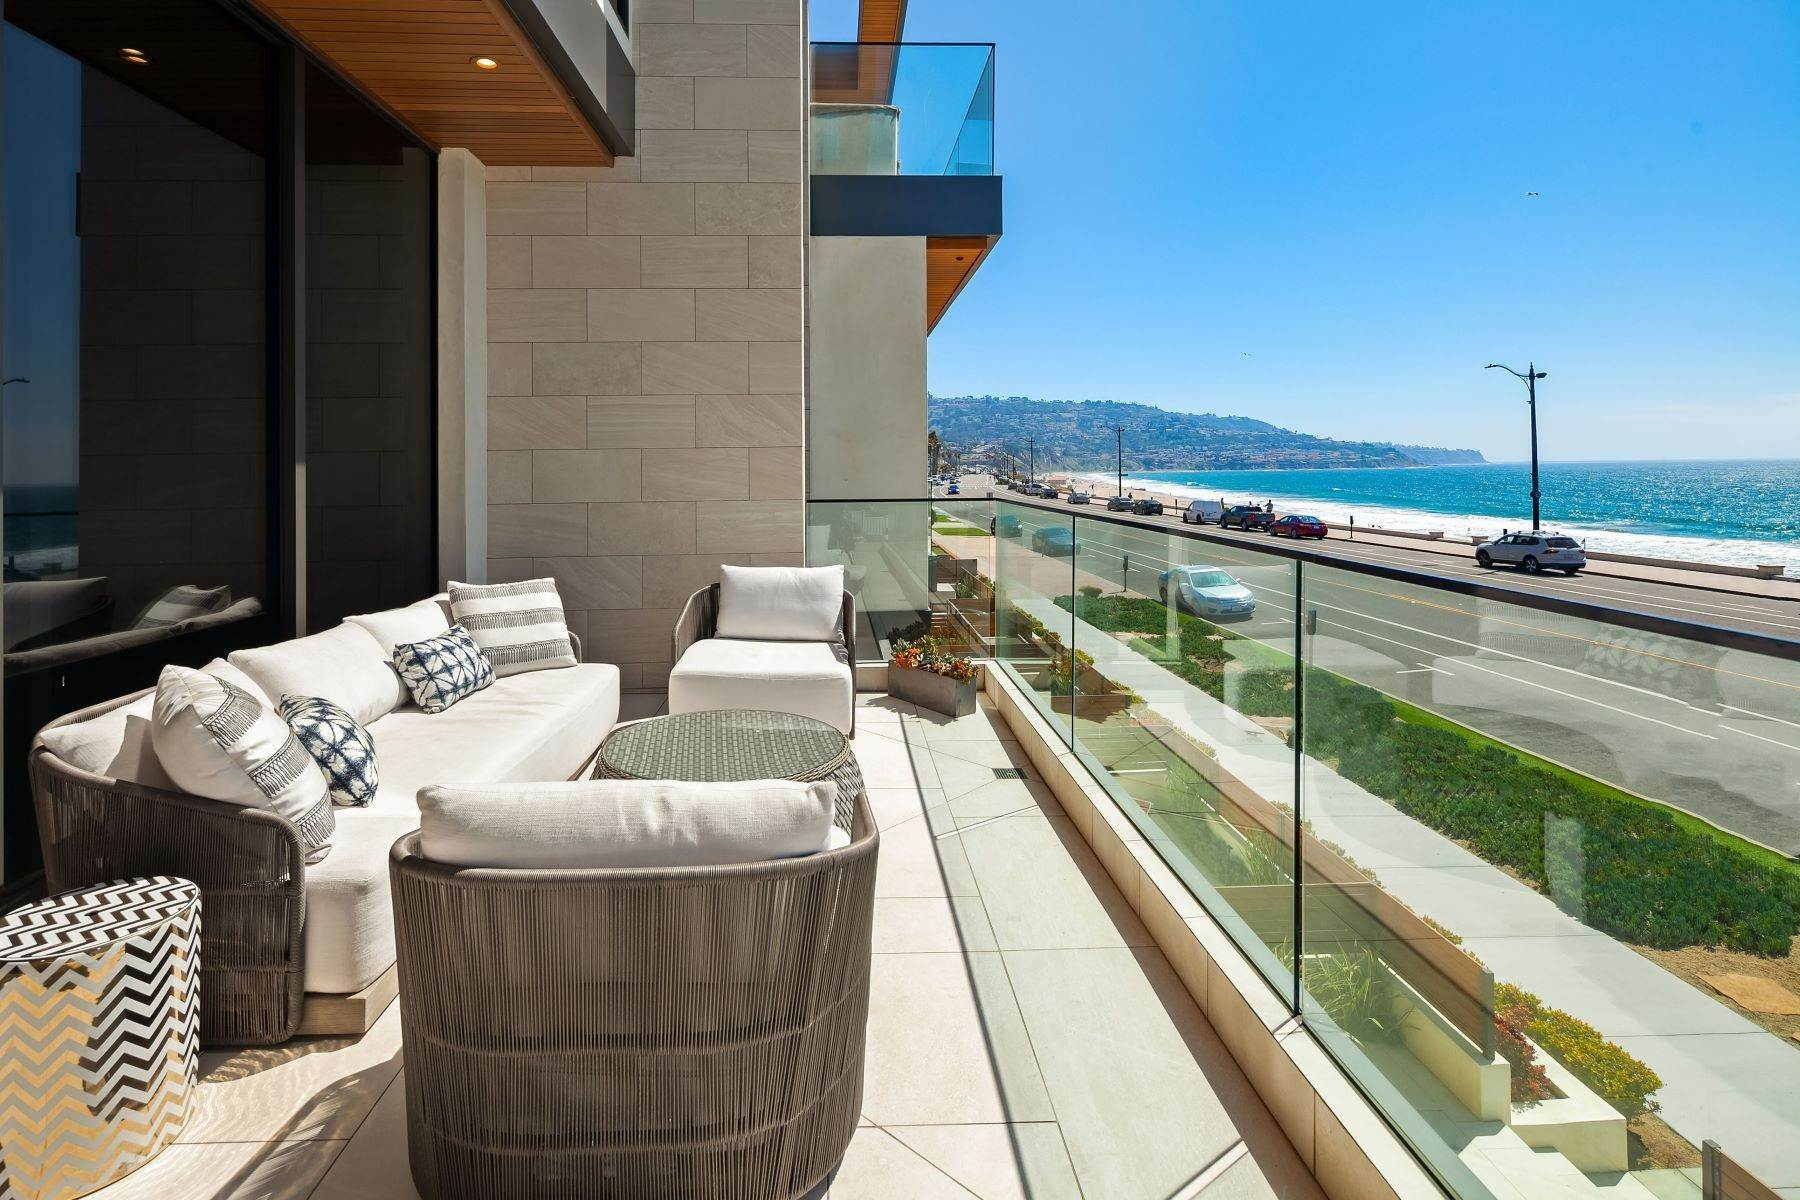 Condominiums at 1500 Esplanade #A, Redondo Beach, CA 90277 1500 Esplanade #A Redondo Beach, California 90277 United States